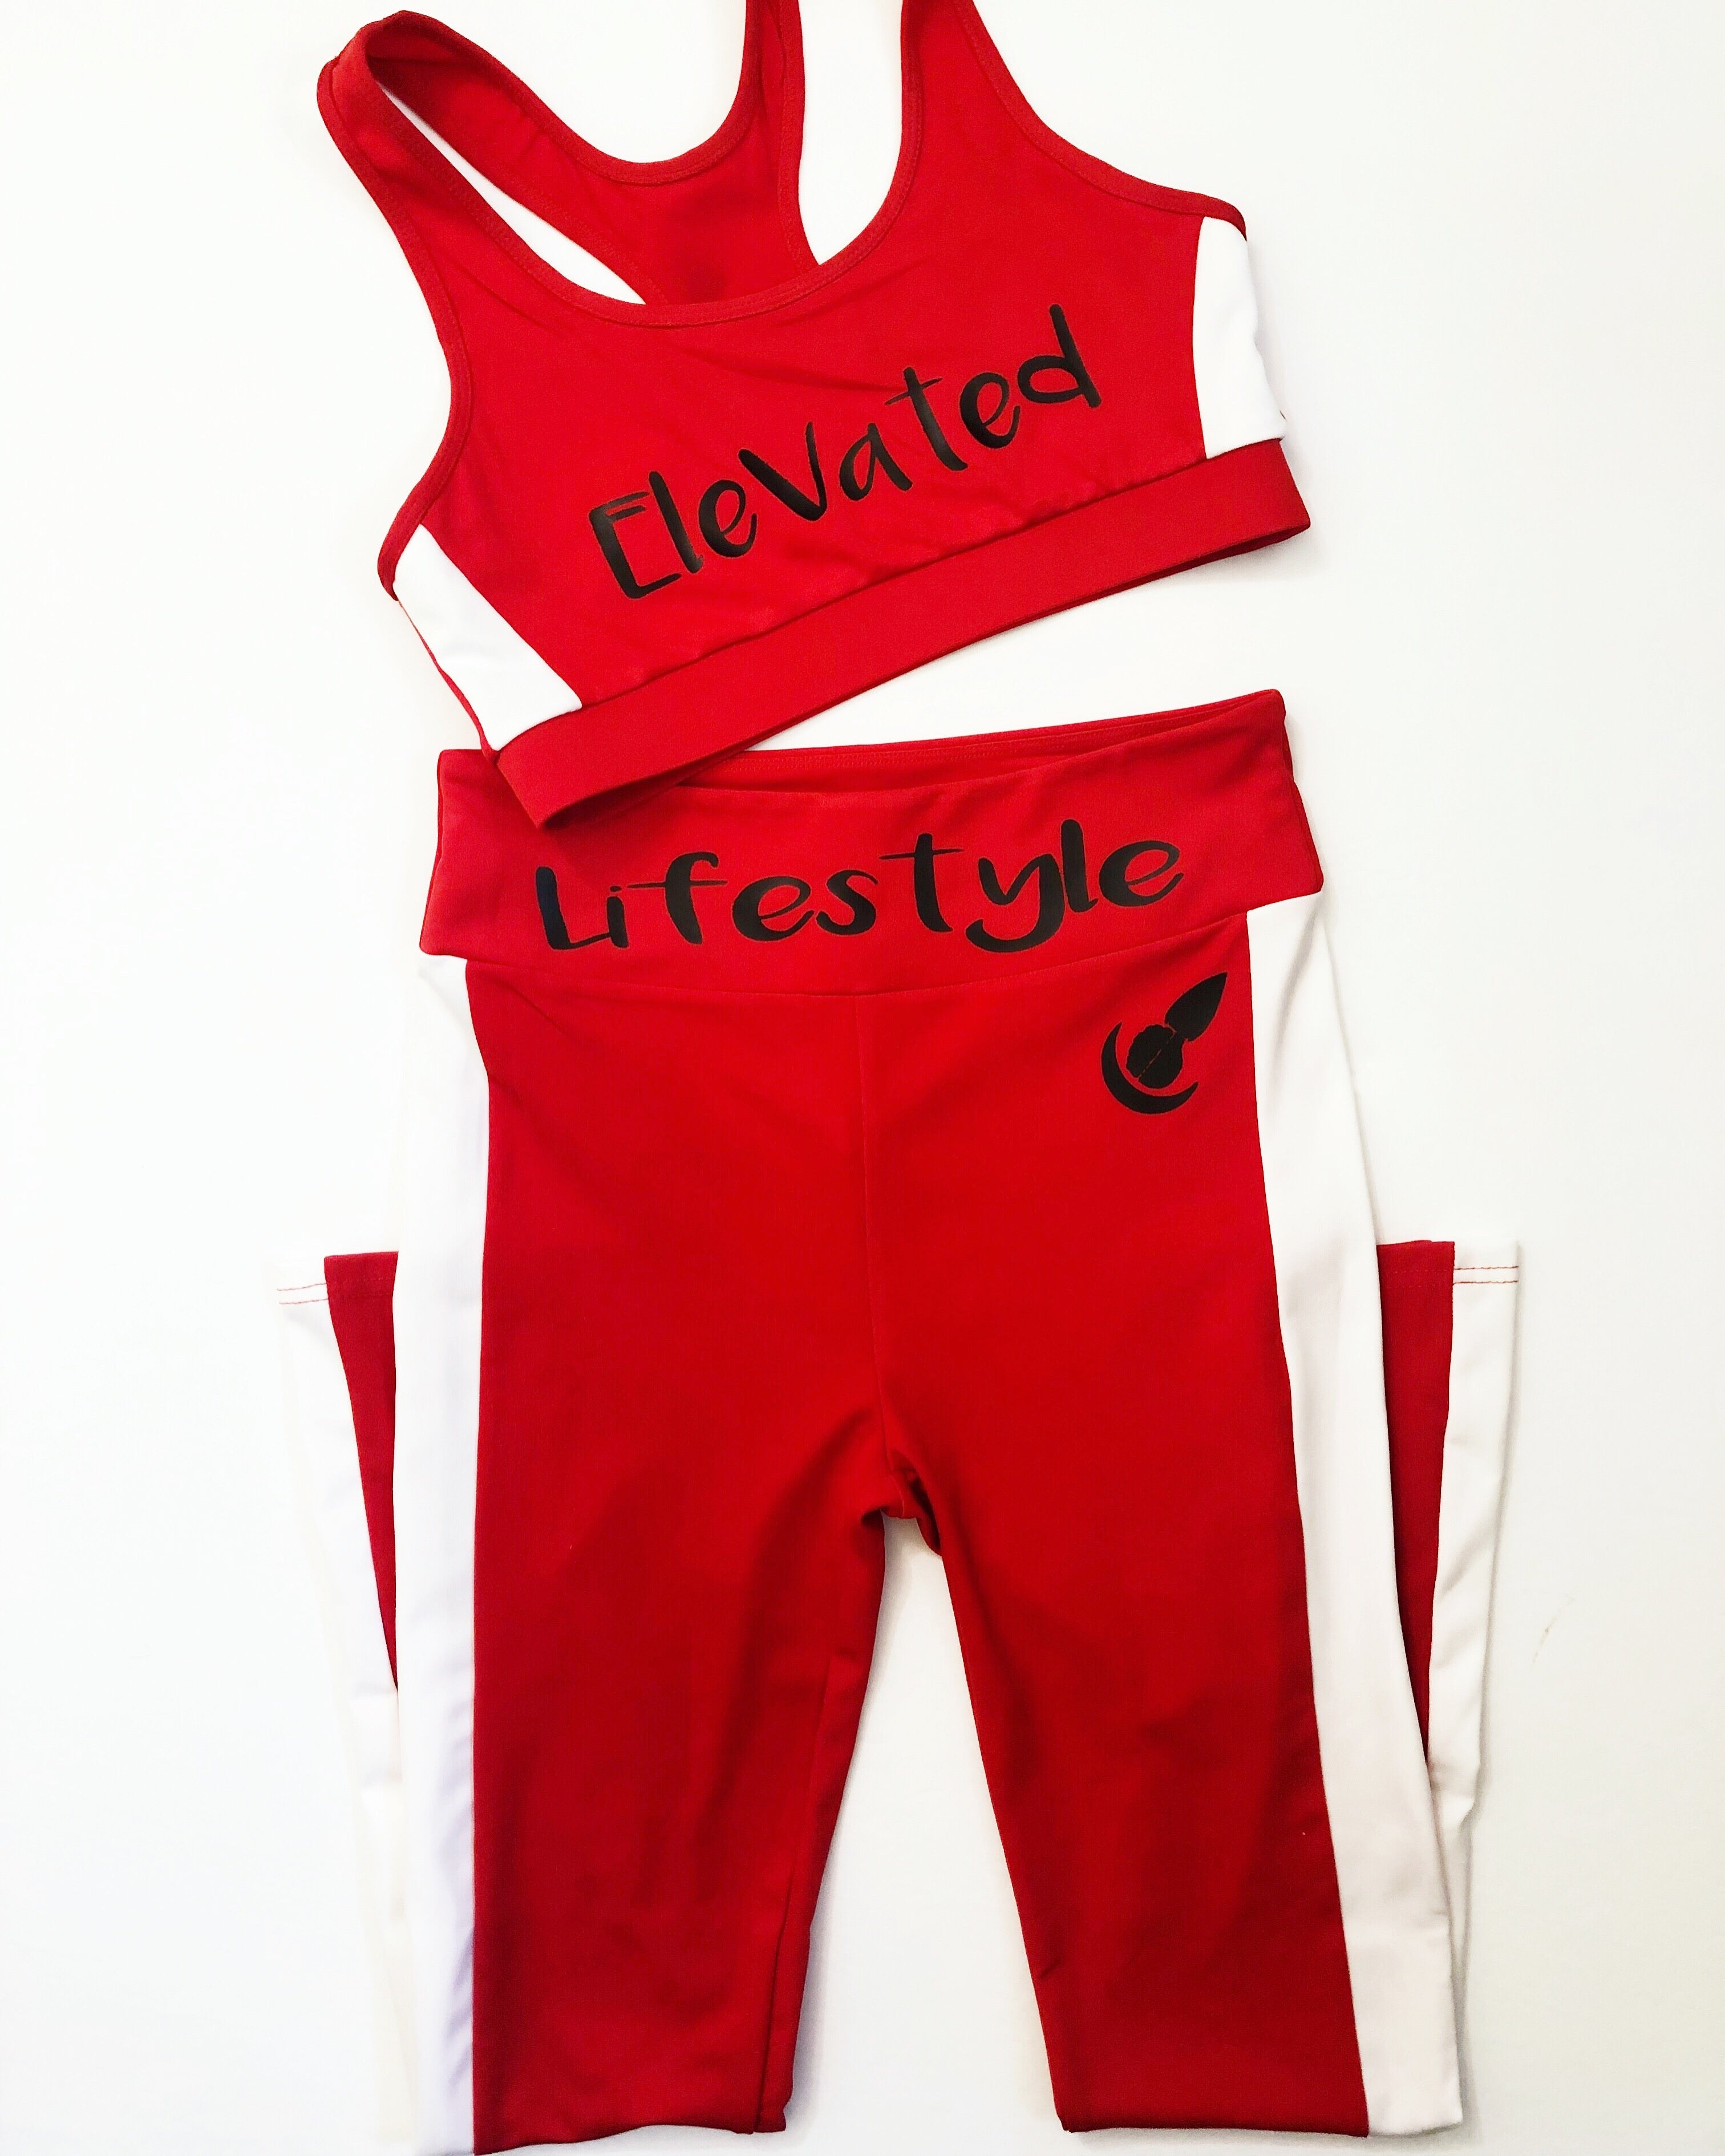 Elevated Lifestyle (Red) 2-Piece